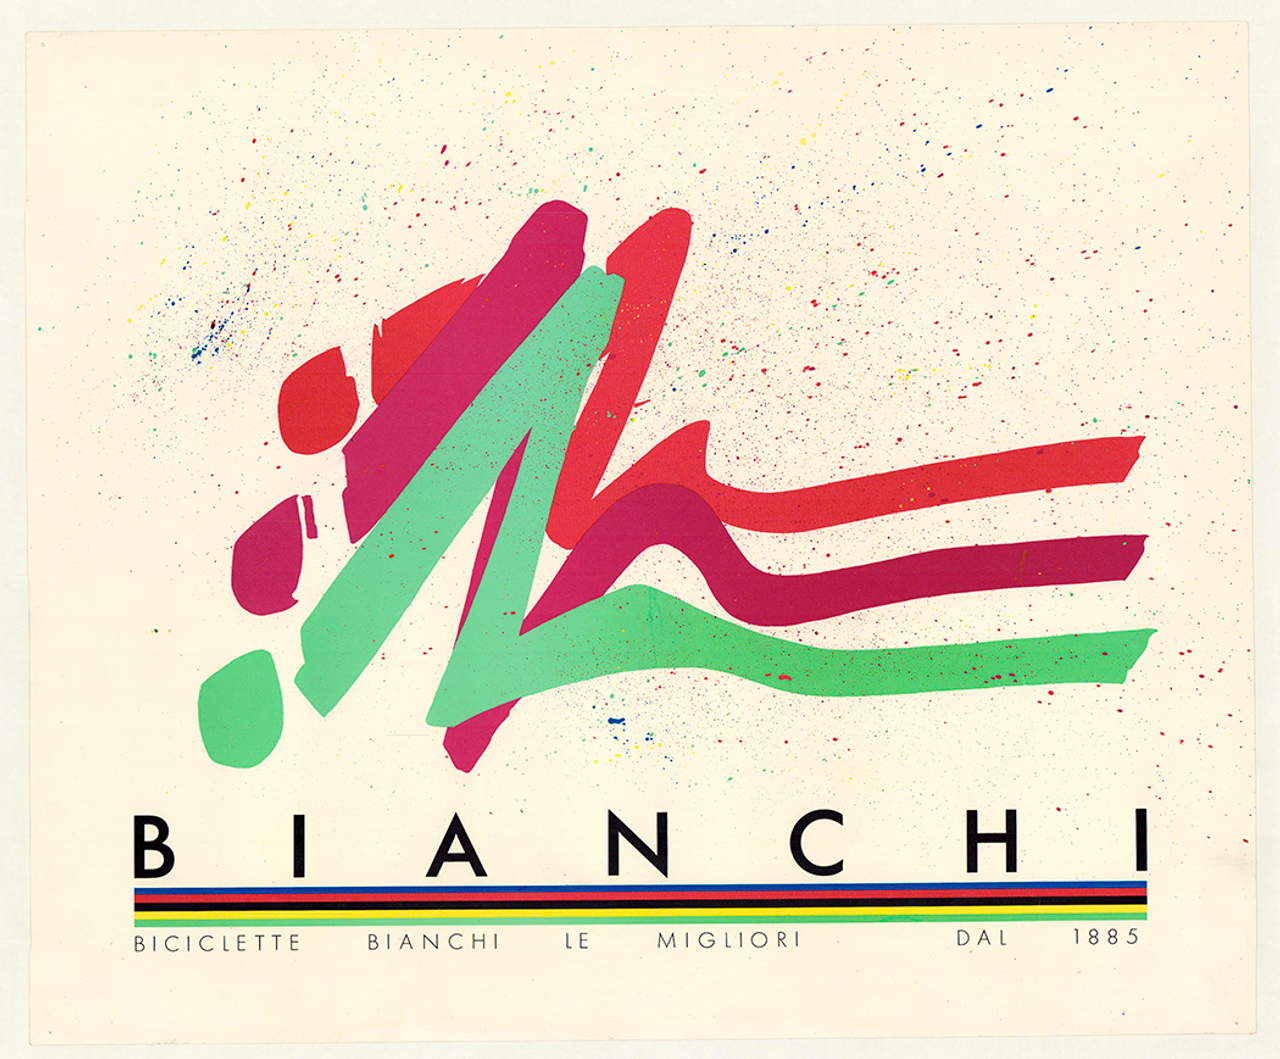 Bianchi Original Vintage Bicycle Poster